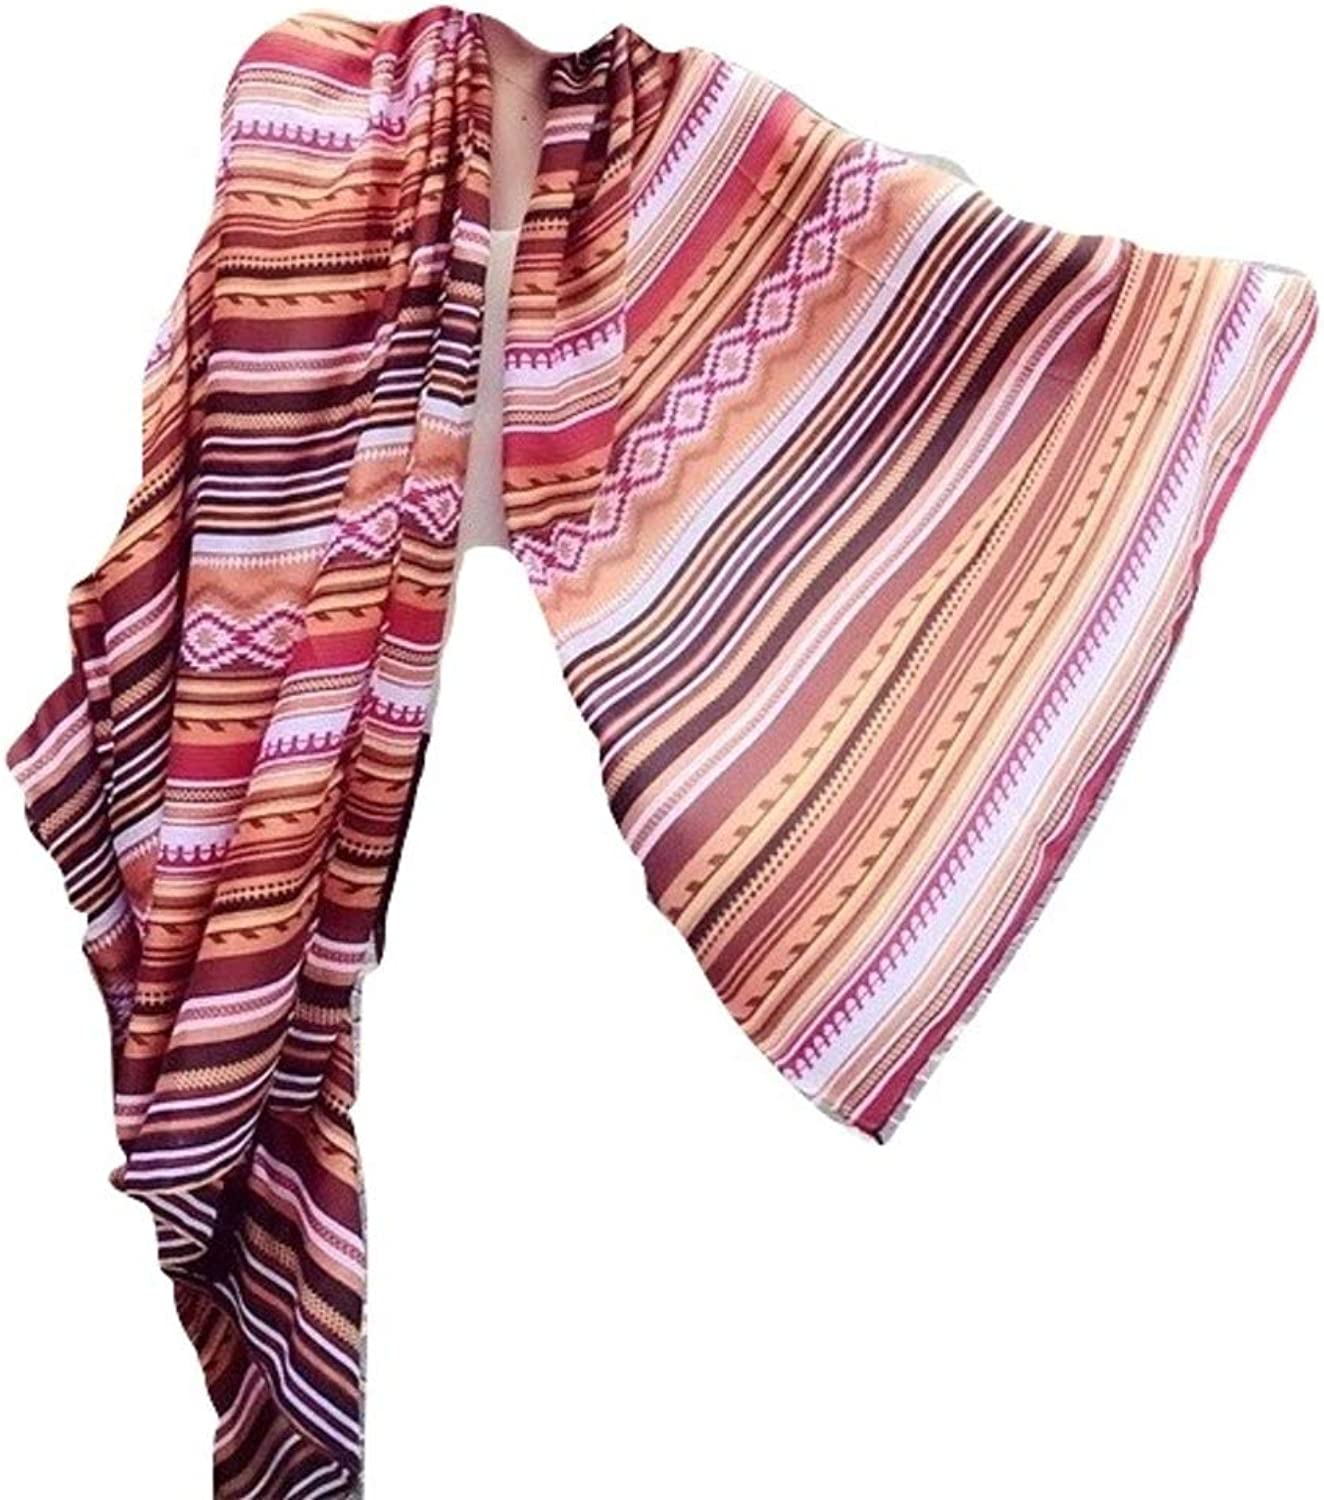 Deep Burgundy Brown Multicolor Striped Tribal Scarf with Fringe Tassels